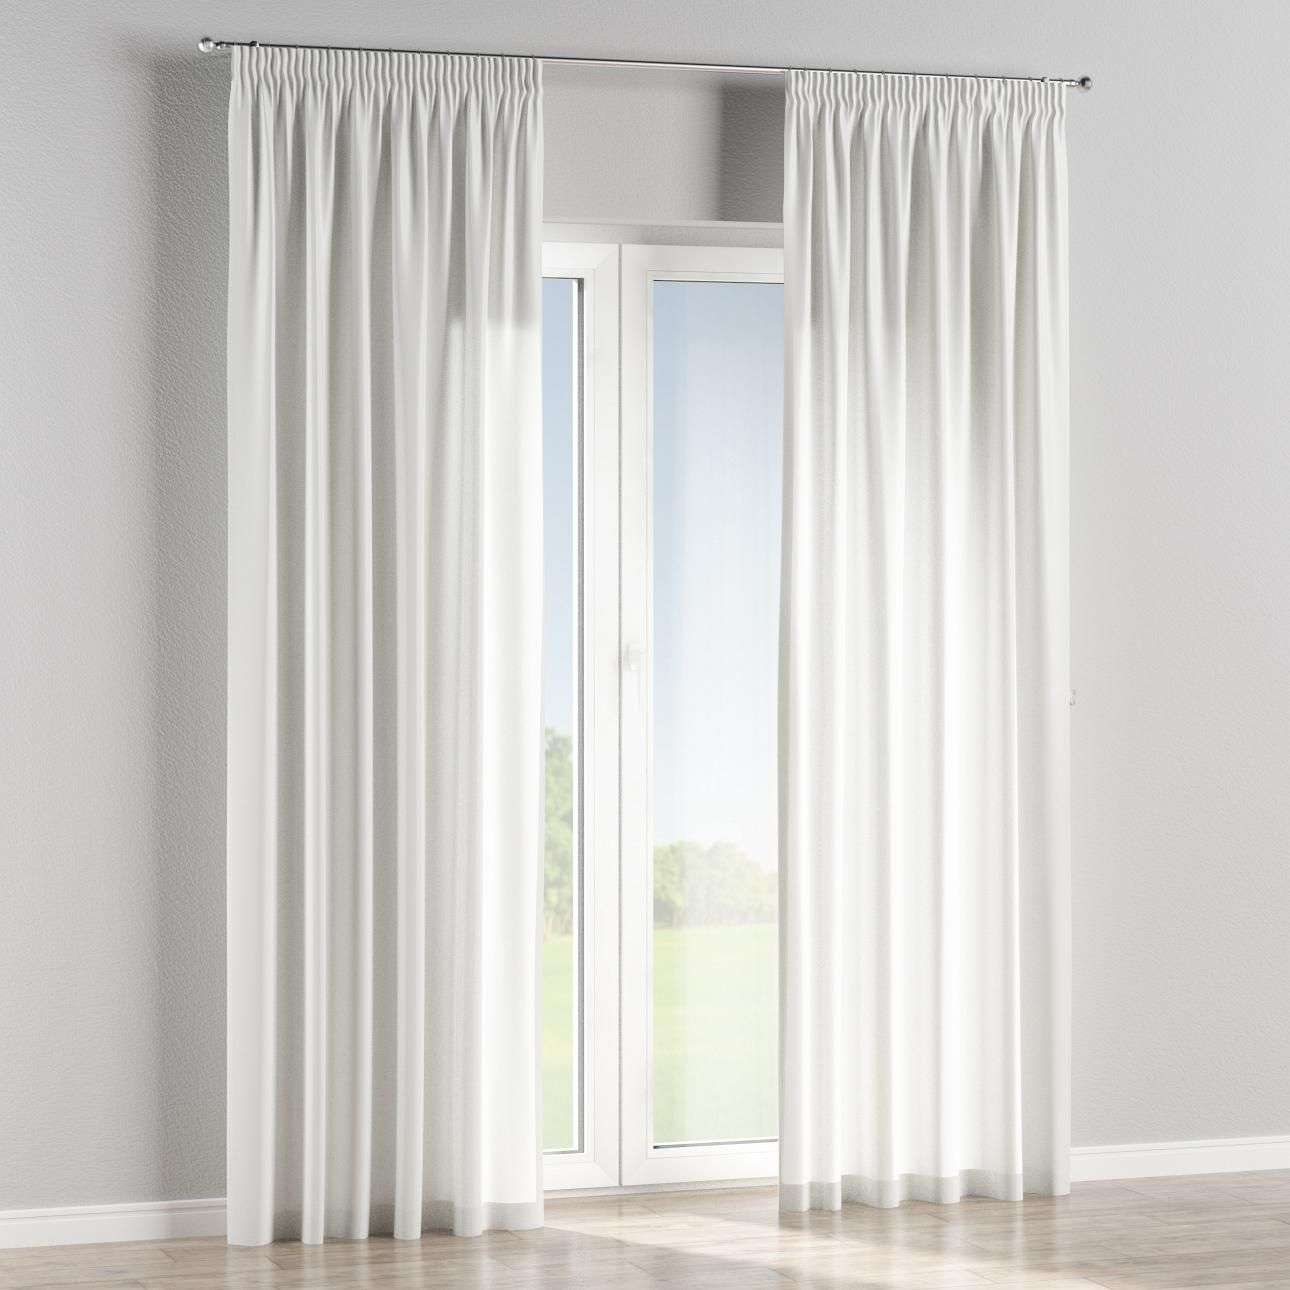 Pencil pleat lined curtains in collection Bristol, fabric: 125-48